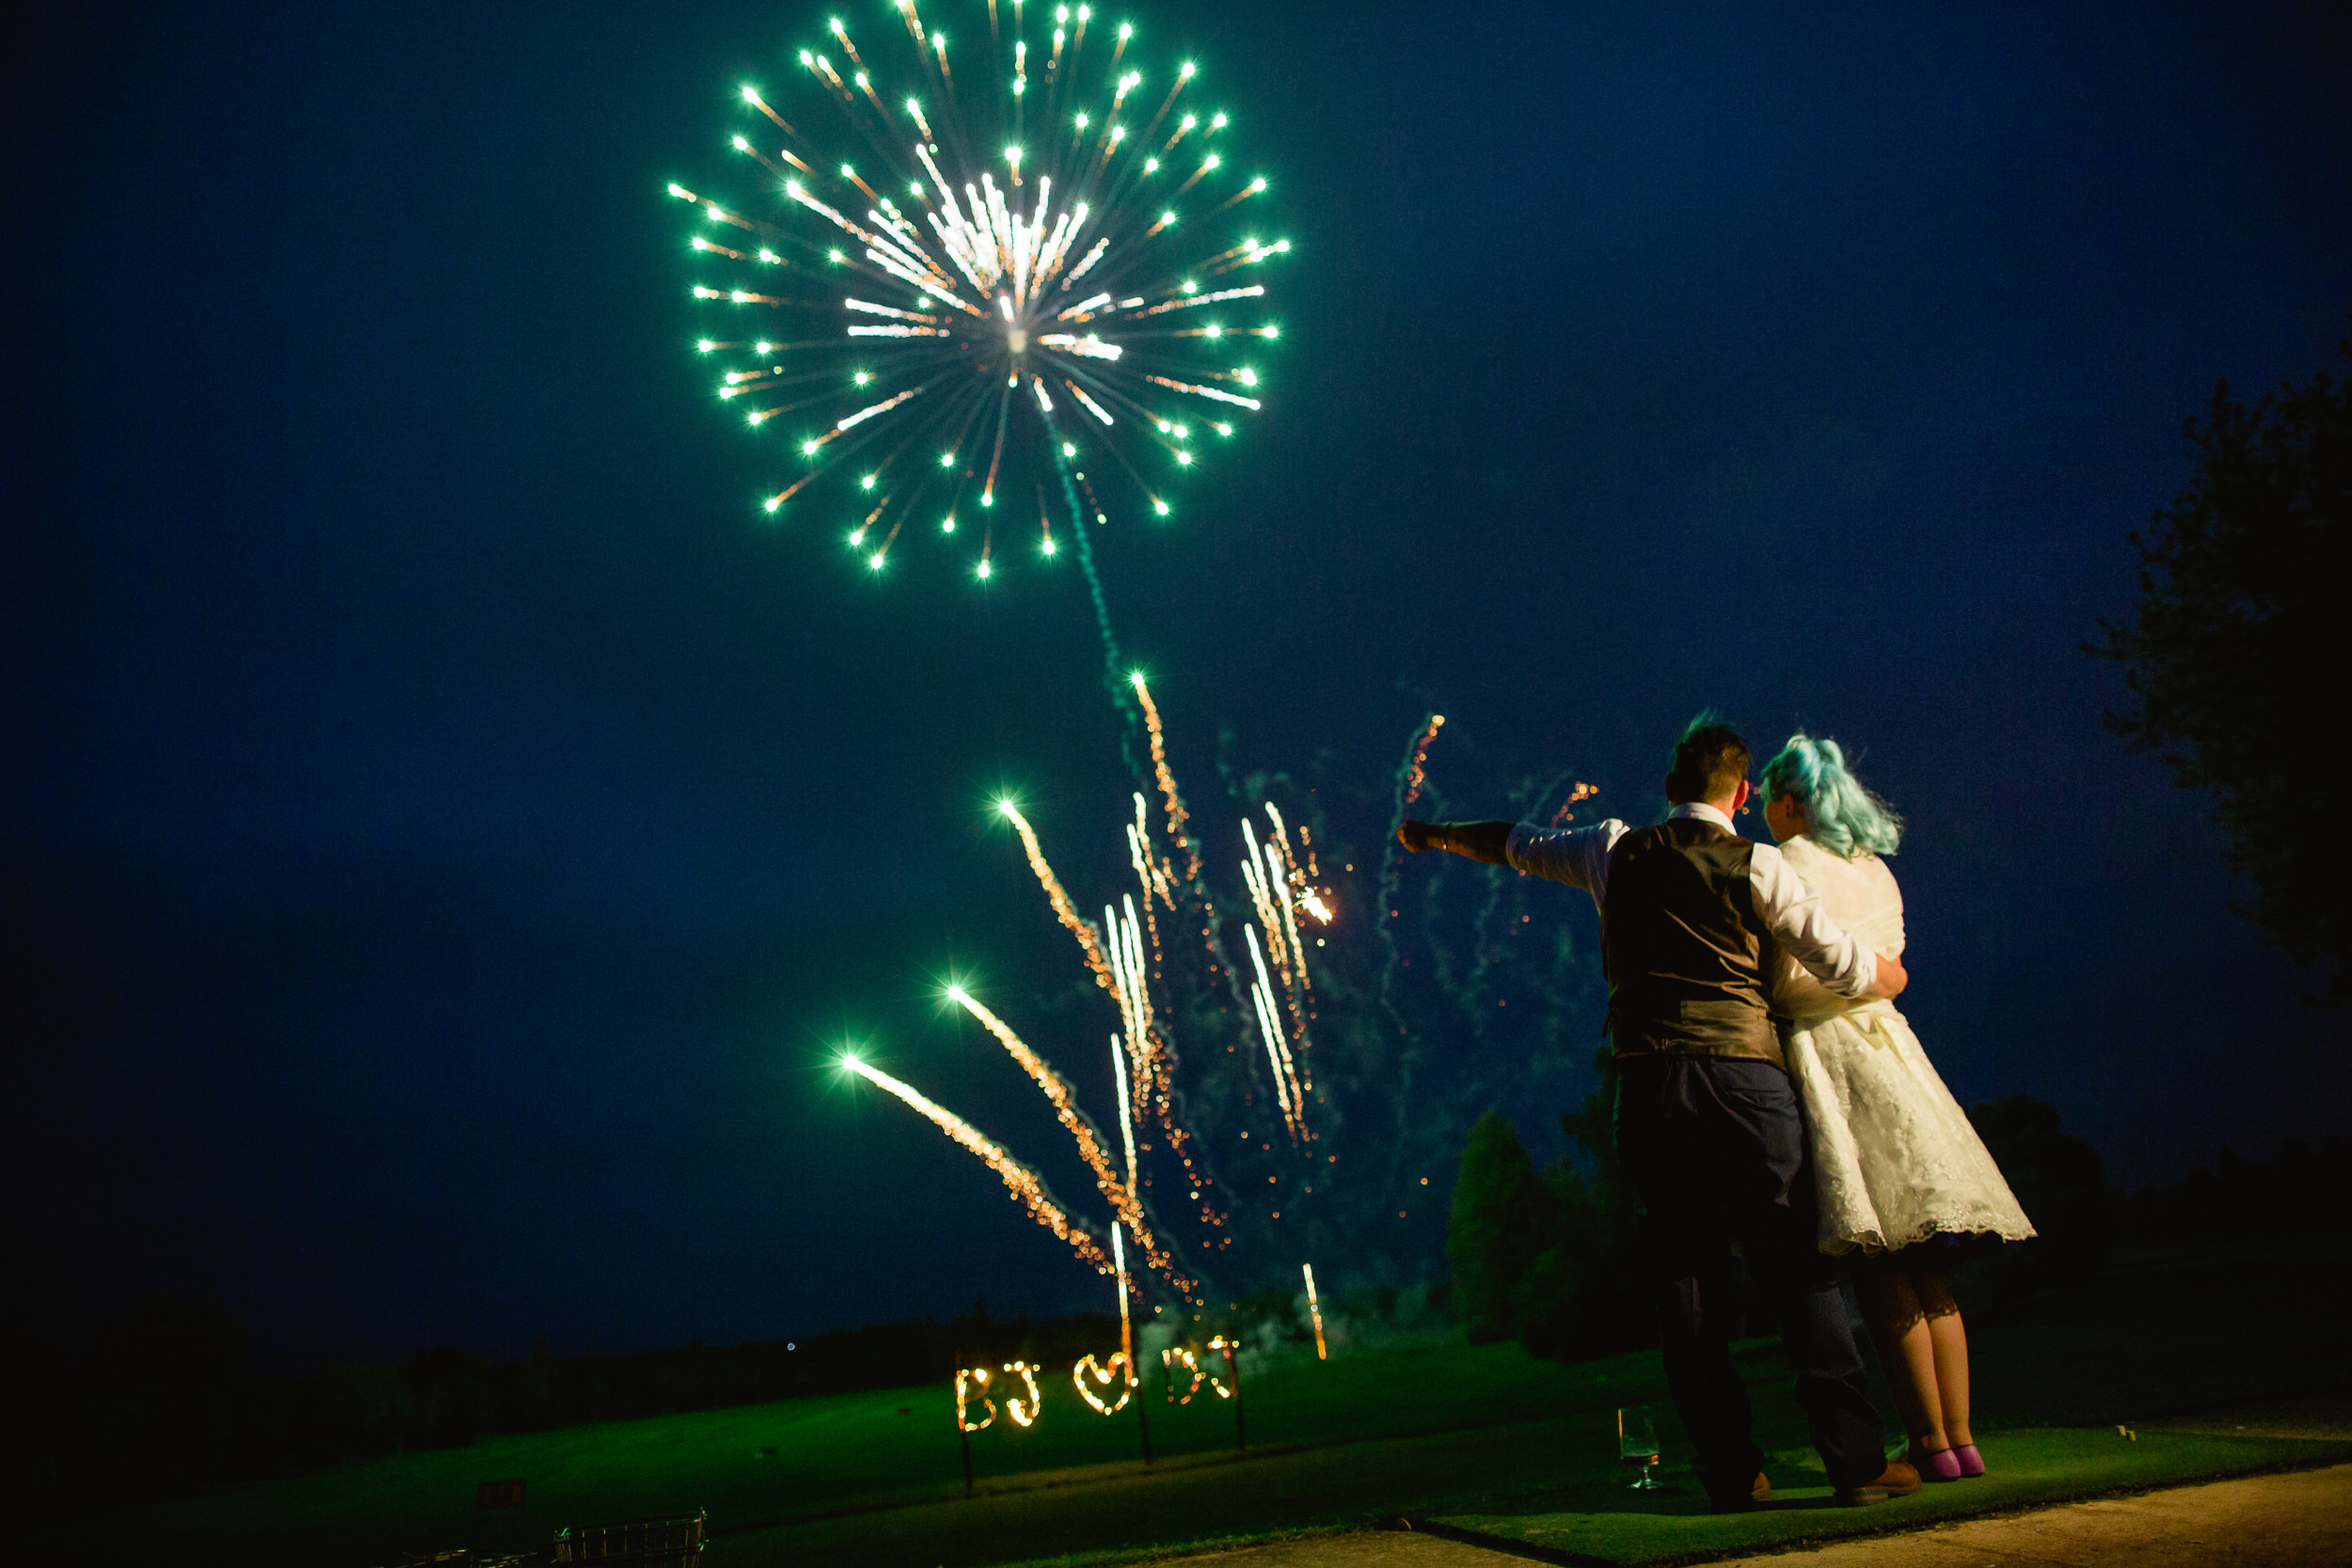 Wedding fireworks - Bride and groom with fireworks - Birmimgham wedding